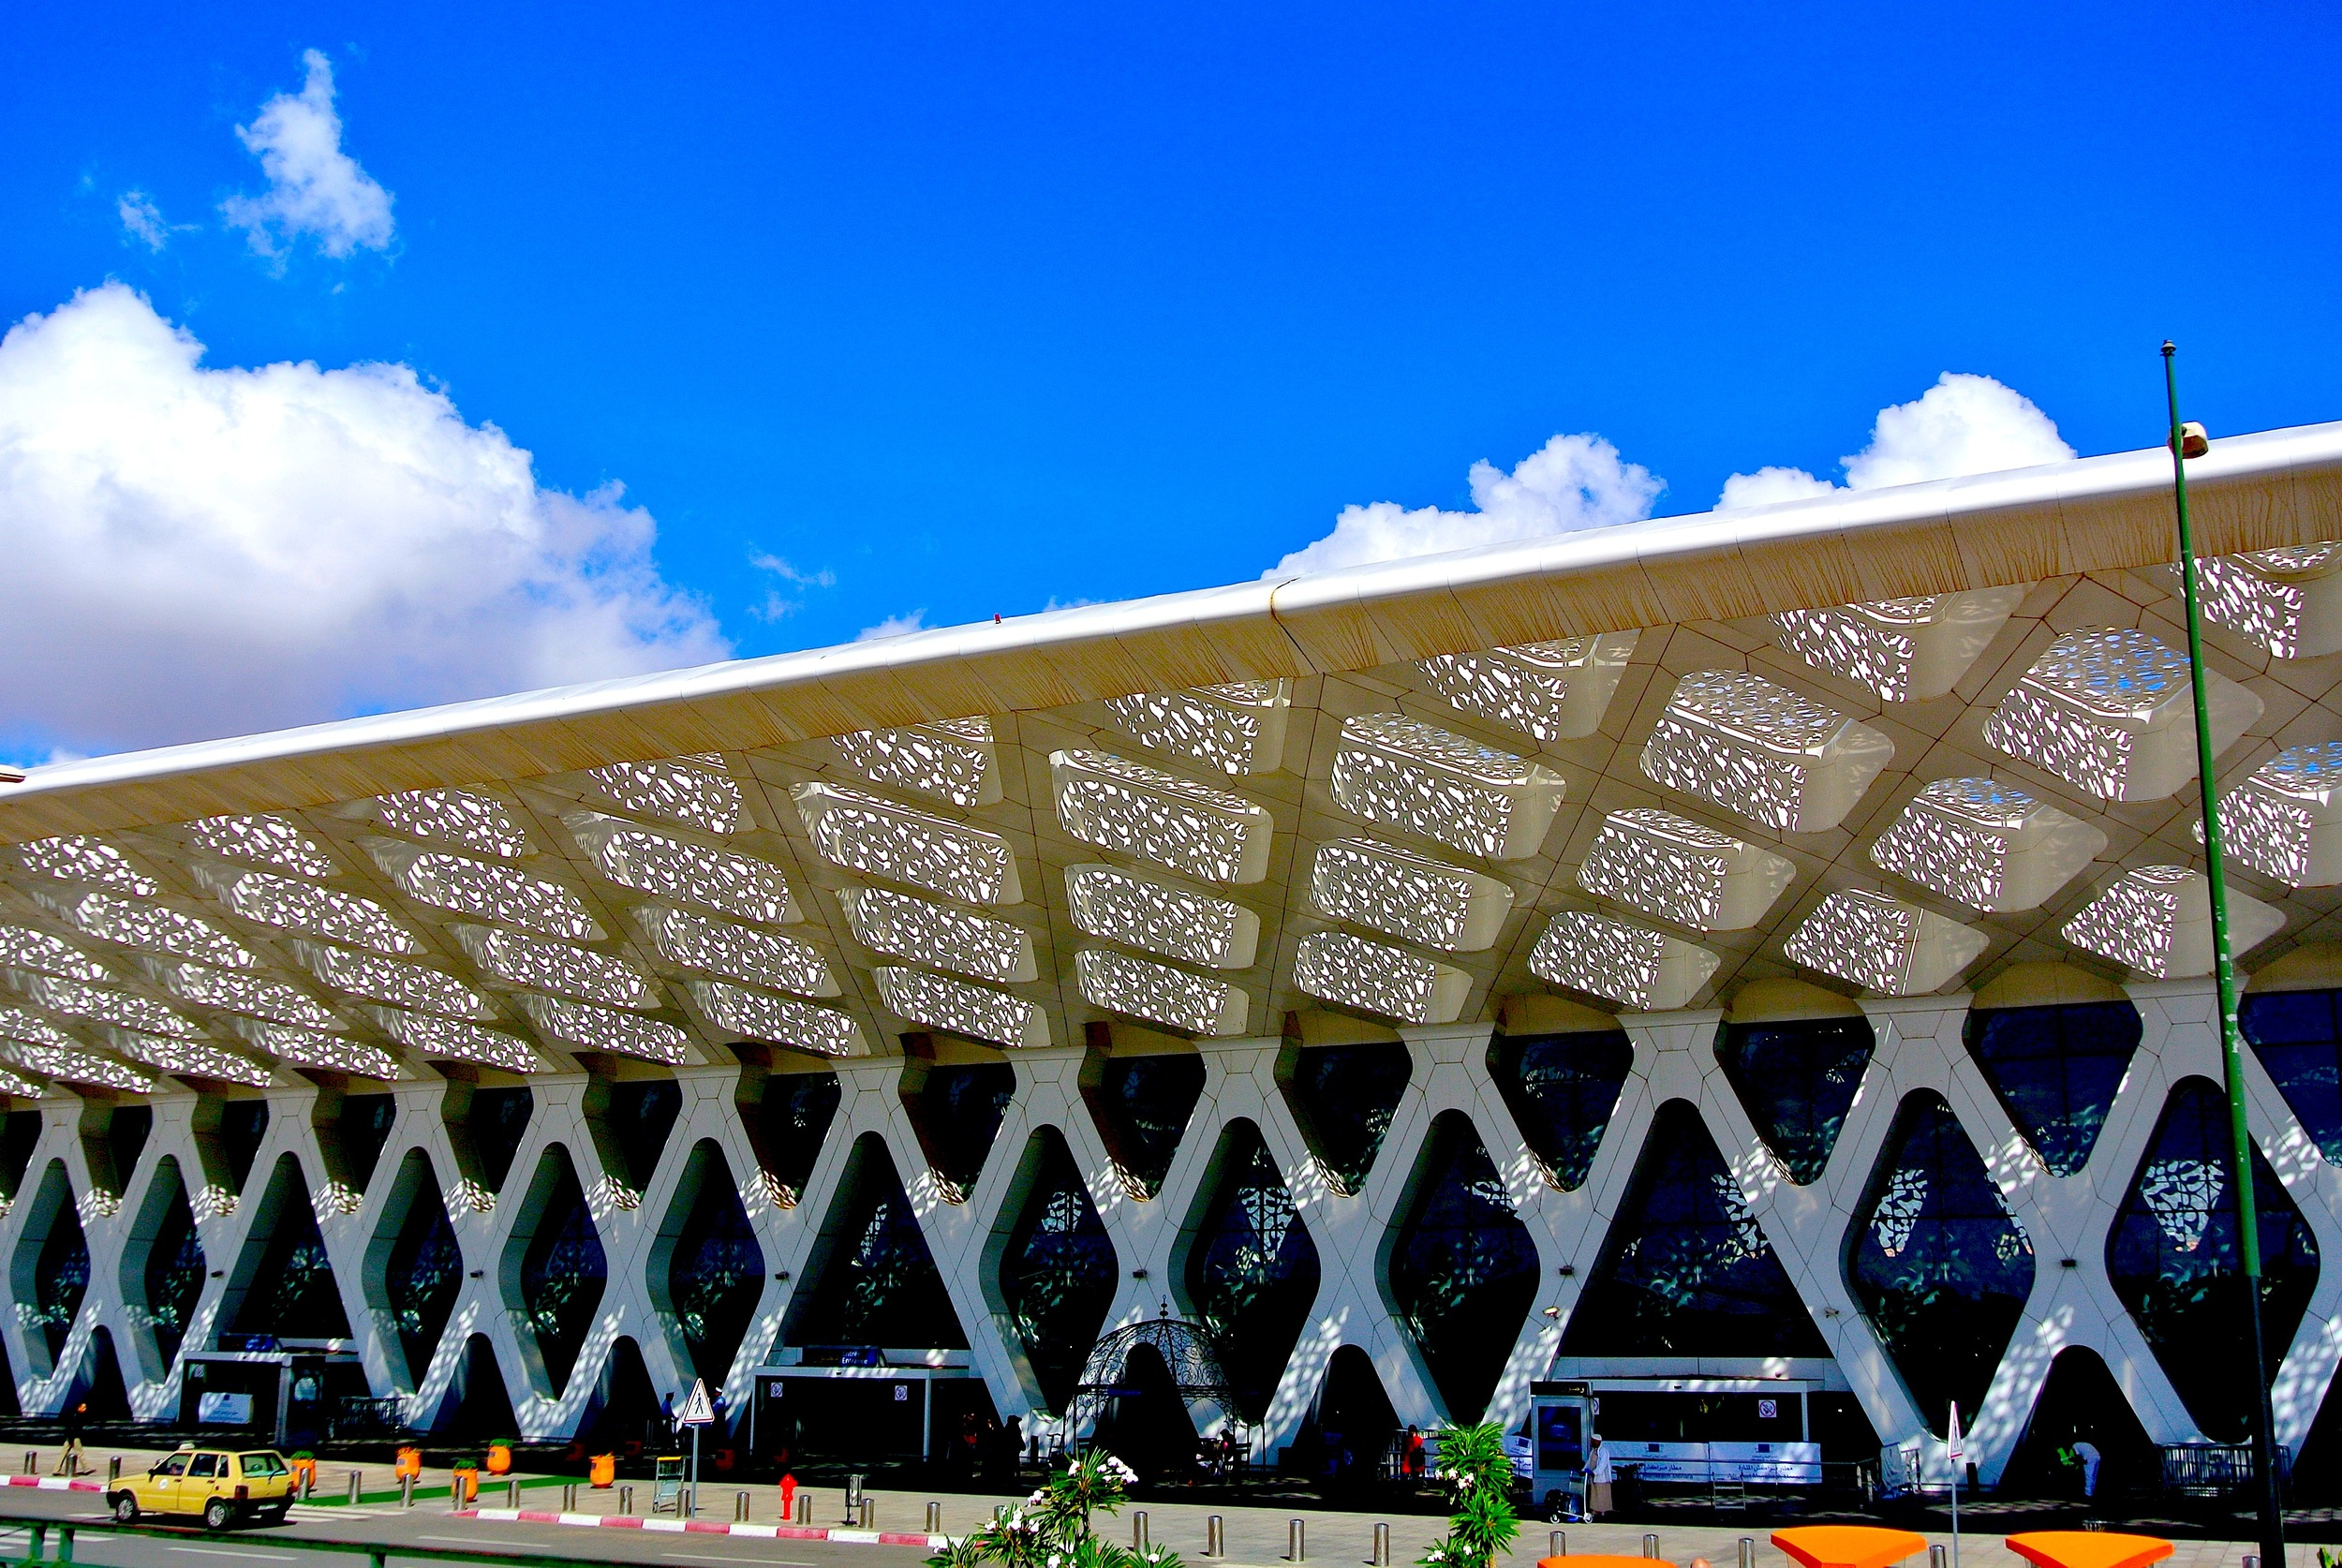 The modern façade of the Marrakech Menara Airport casts gorgeous lace-like shadows